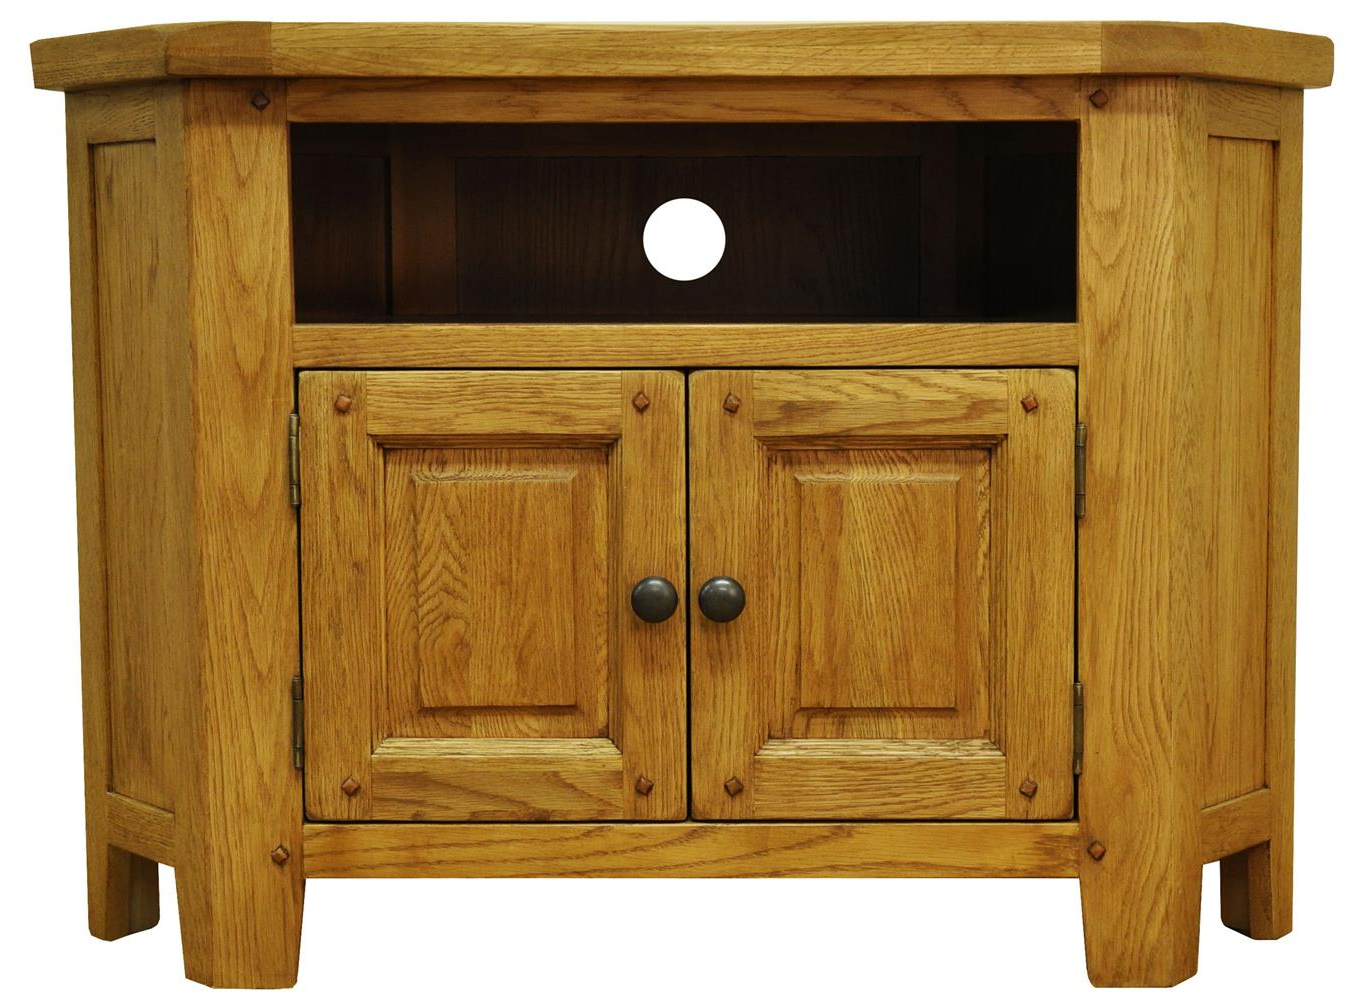 Dark Wood Corner Tv Cabinets Regarding Most Up To Date Tv Cabinets : Stanton Rustic Oak Corner Tv Unitstanton Rustic Oak (Gallery 4 of 20)